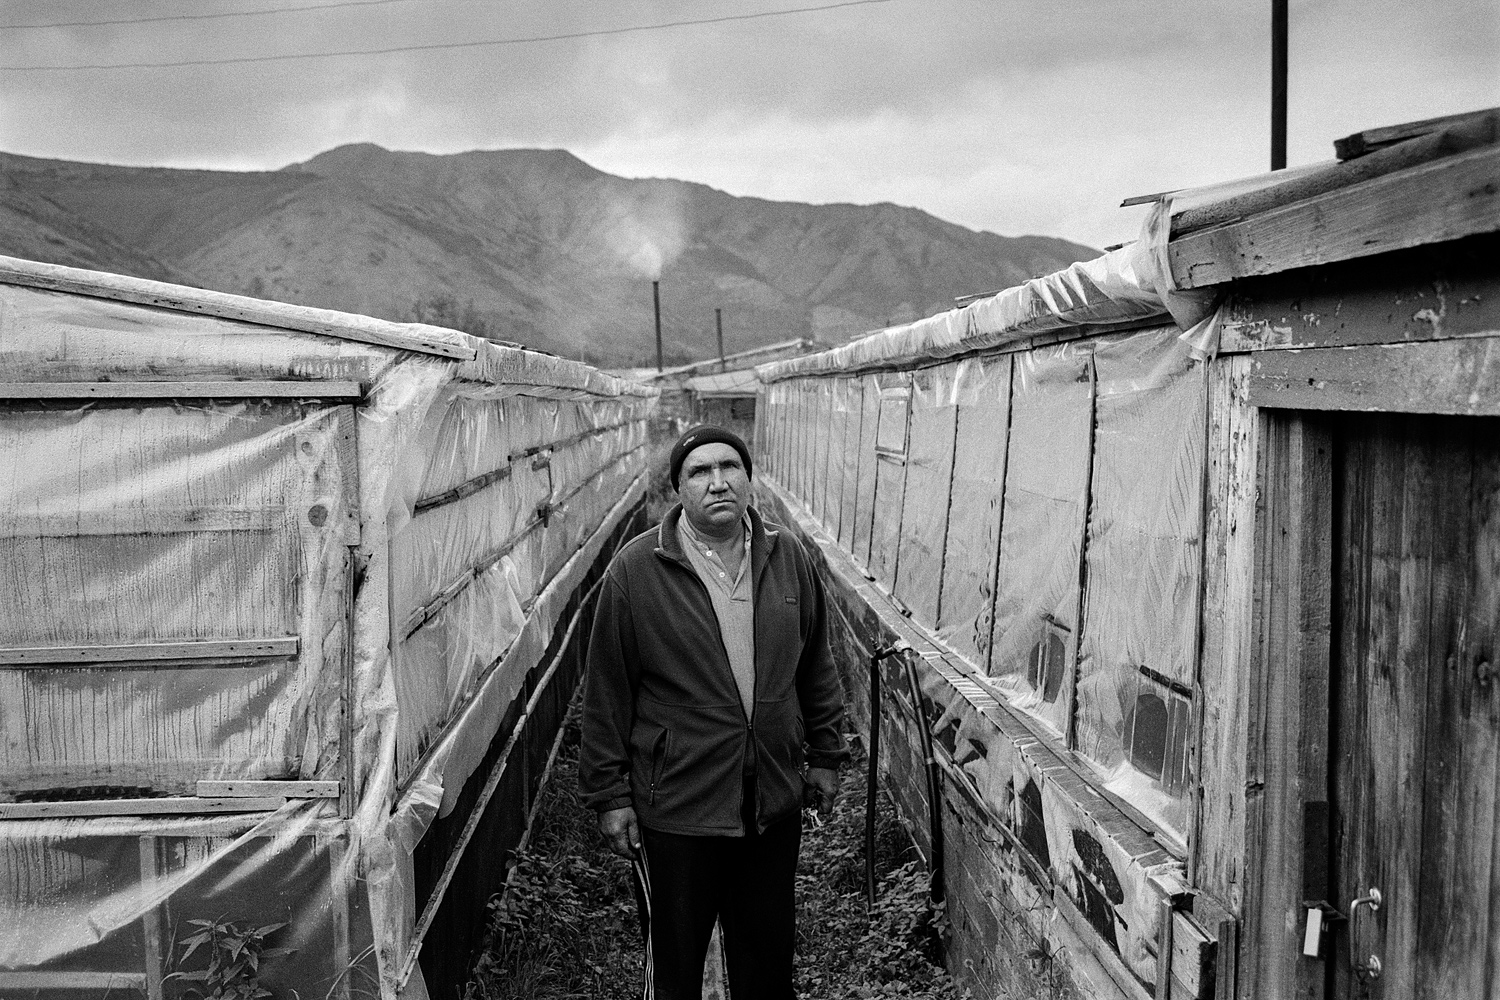 In 1995 the Karamken mining and processing plant was closed down. In 2012 Karamken lost its status of urban-type settlement, and is now in the resettlement list. Valeriy is one of the few remaining residents. He cultivates cucumbers in greenhouses heated with firewood.